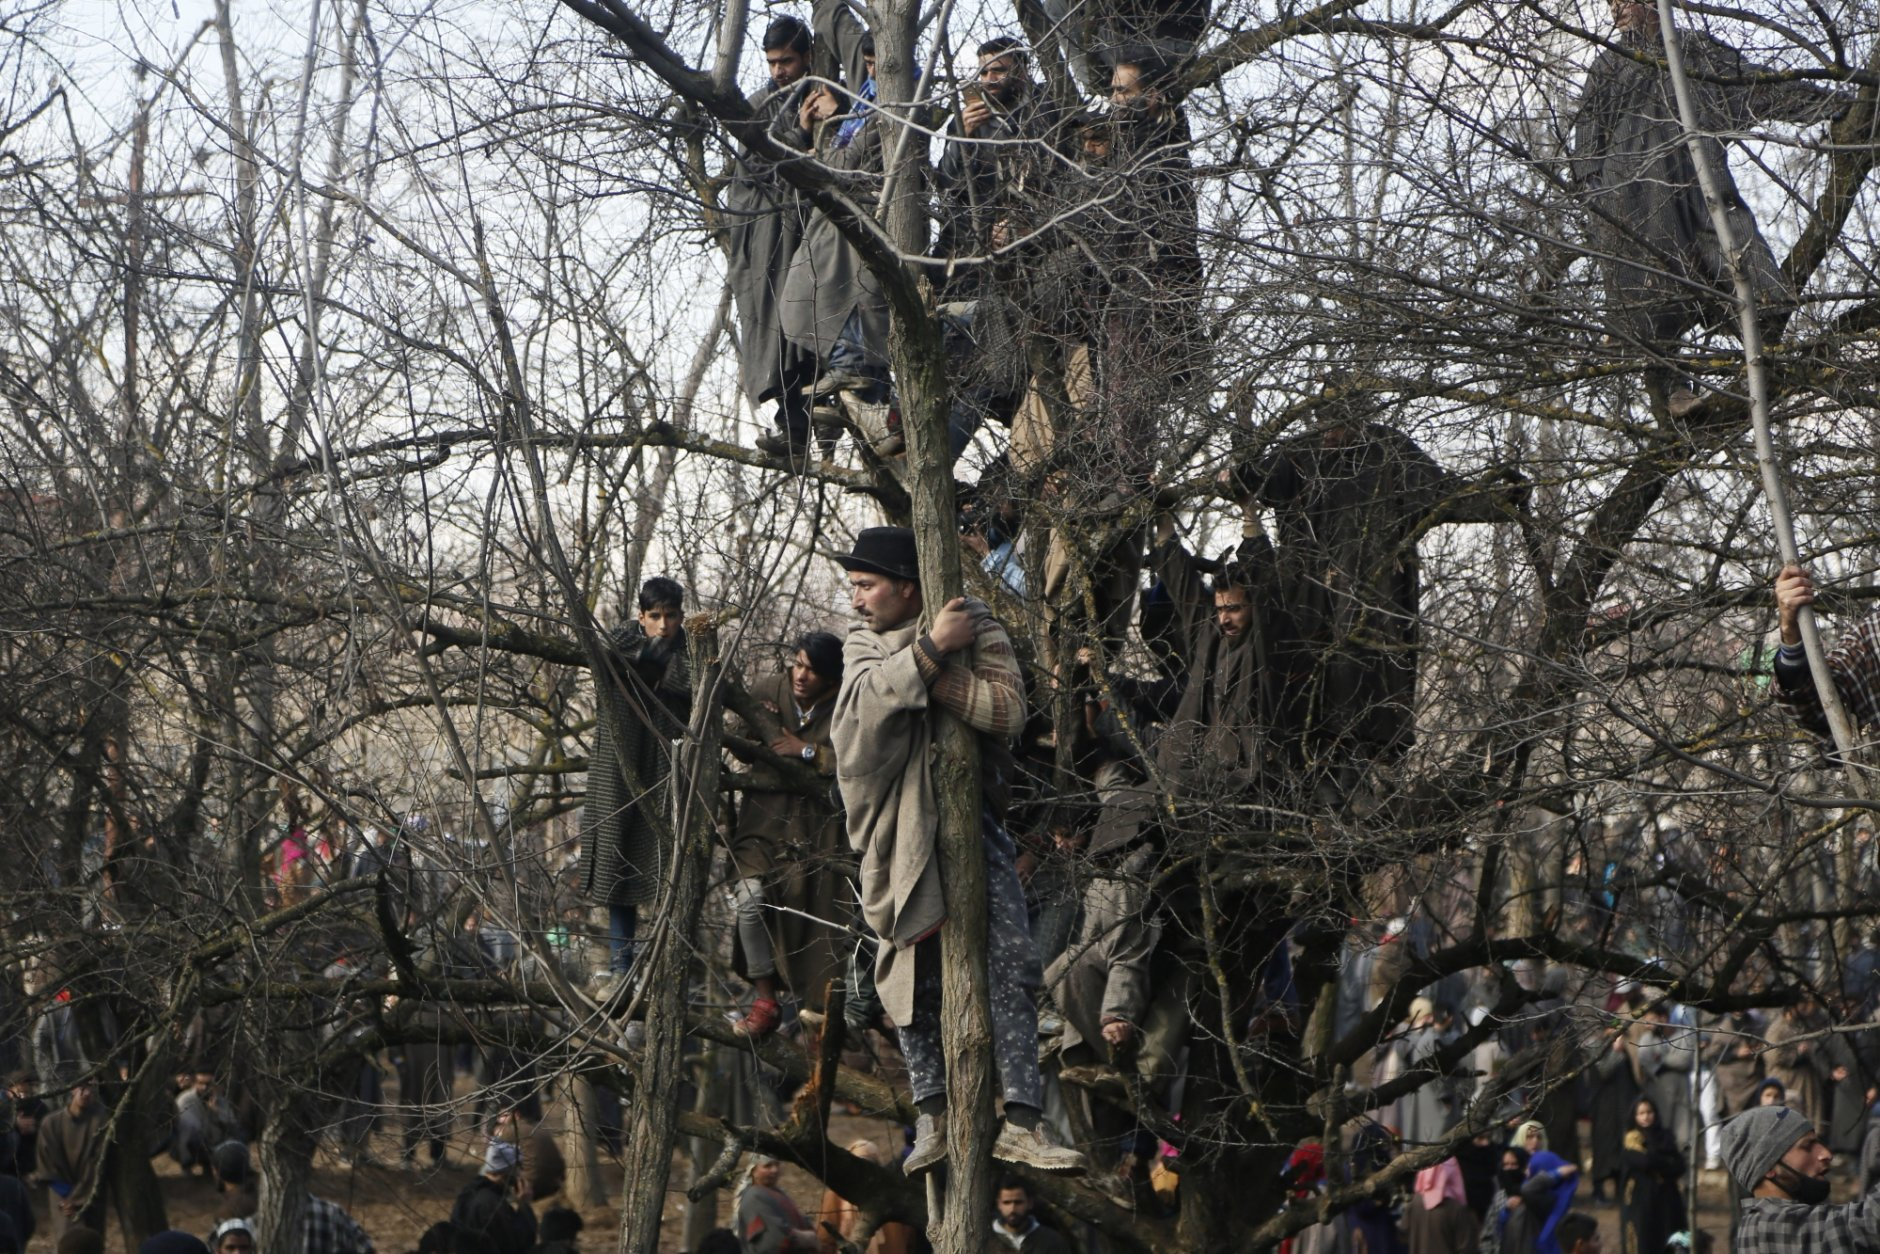 Kashmiri villagers watch the funeral of rebel commander Zeenatul Islam in Sugan village, 61 kilometers (38 miles) south of Srinagar, Indian controlled Kashmir, on Sunday, Jan. 13, 2019. Massive anti-India protests and clashes erupted in disputed Kashmir on Sunday, leading to injuries to at least 16 people after a gunbattle between militants and government forces overnight killed two rebels, police and residents said. (AP Photo/Mukhtar Khan)